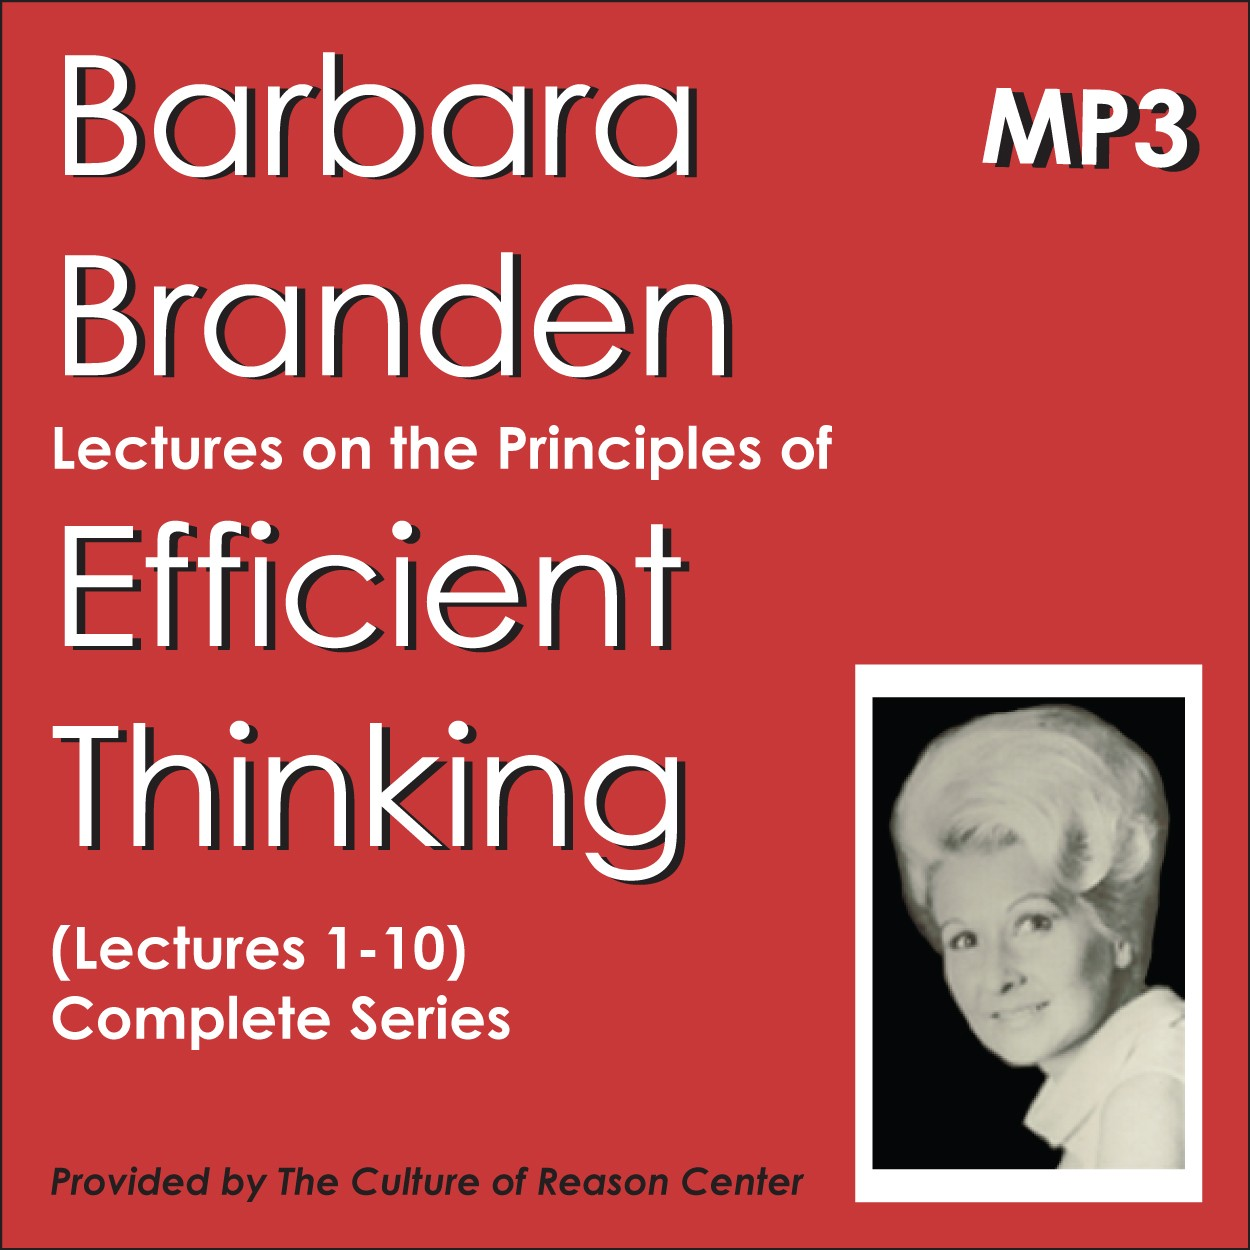 The Principles of Efficient Thinking by Barbara Branden